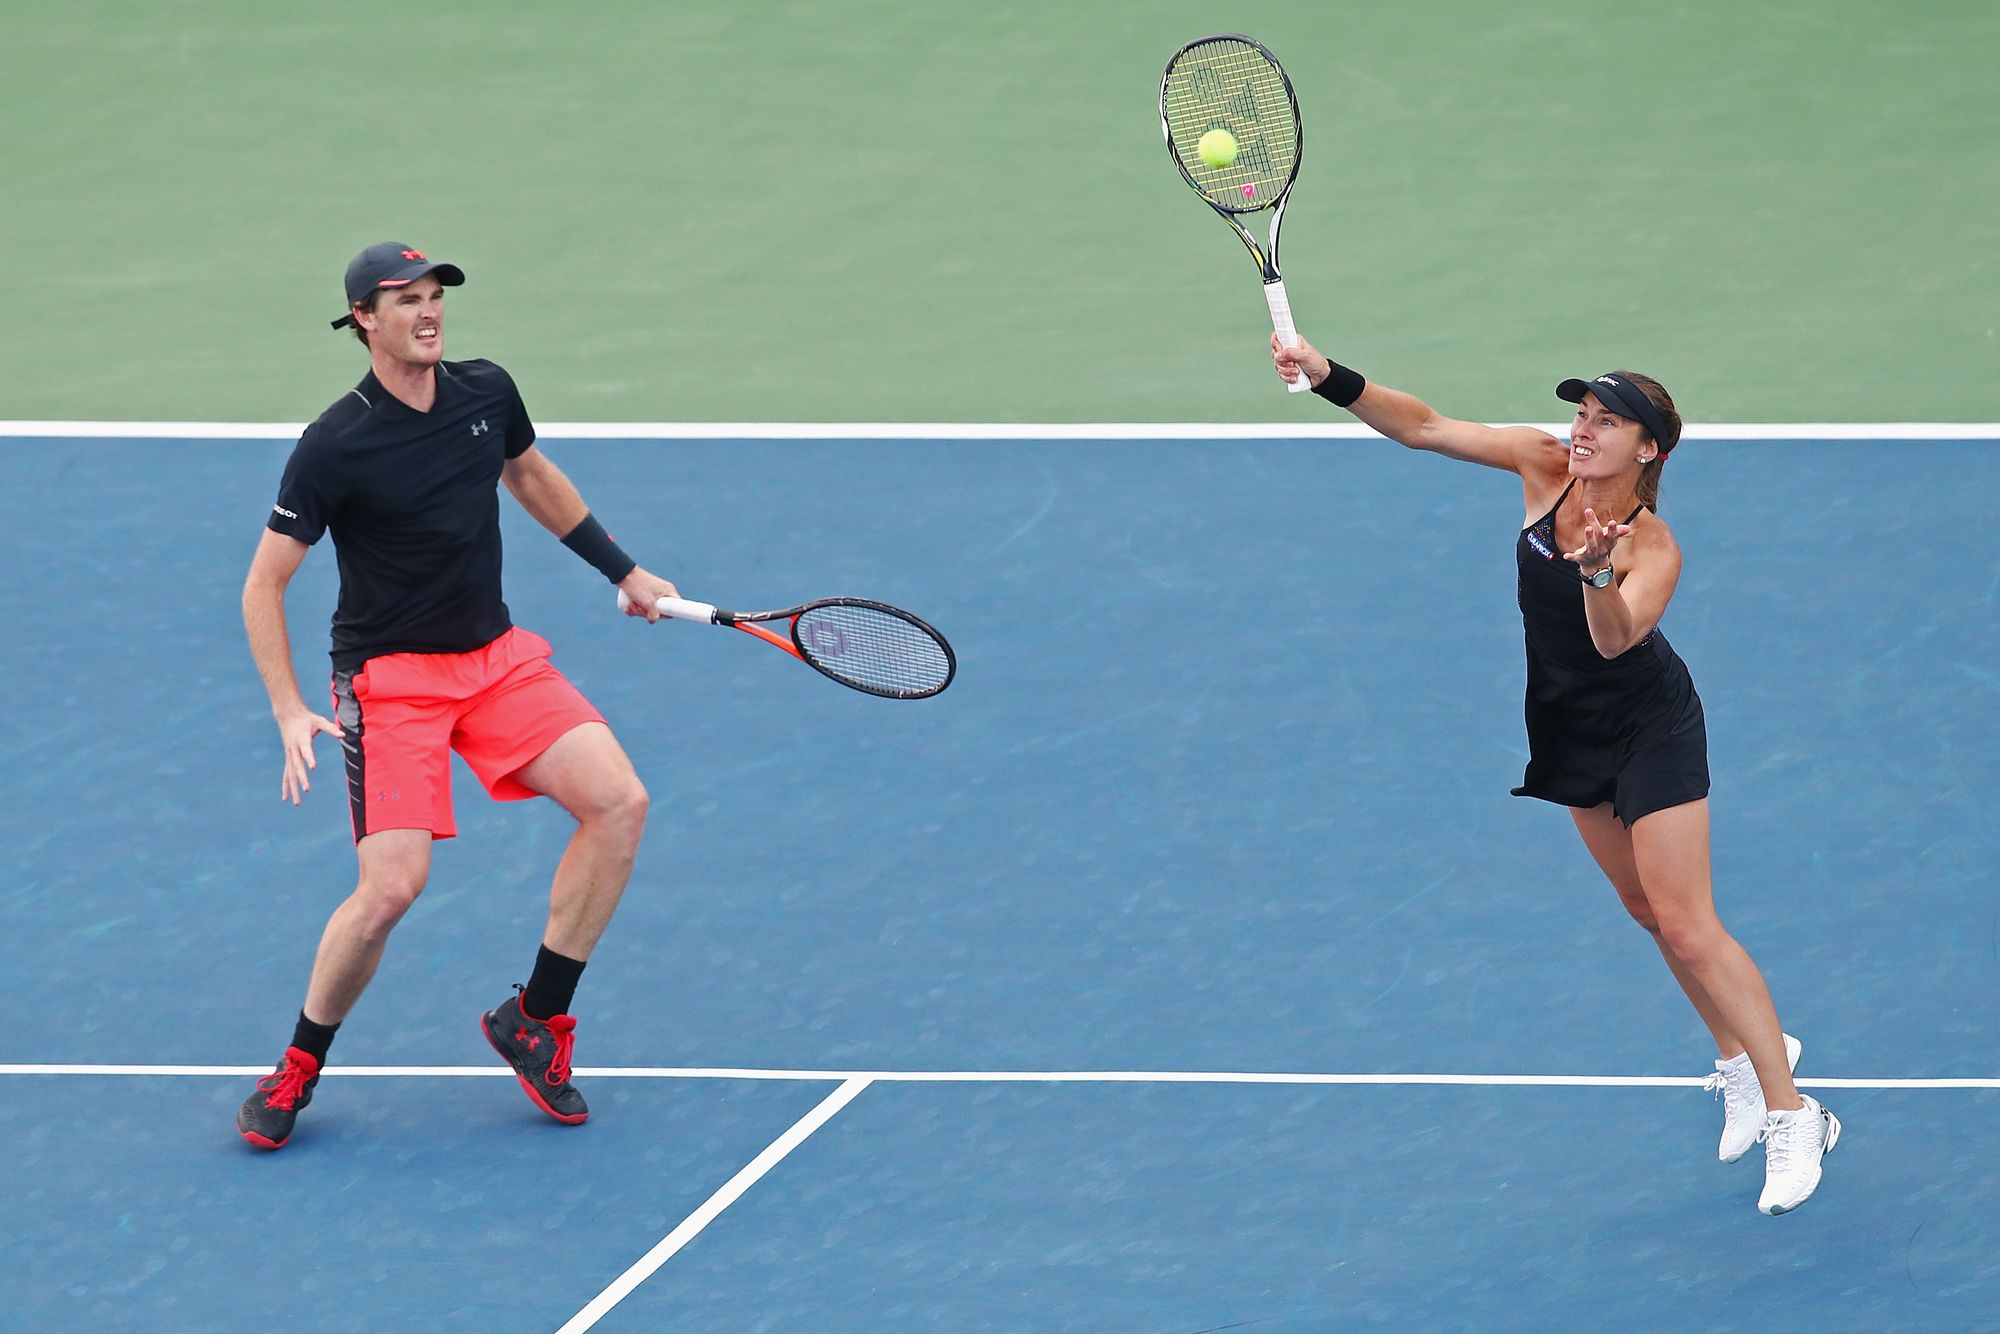 Martina Hingis et Jamie Murray remportent le double mixte